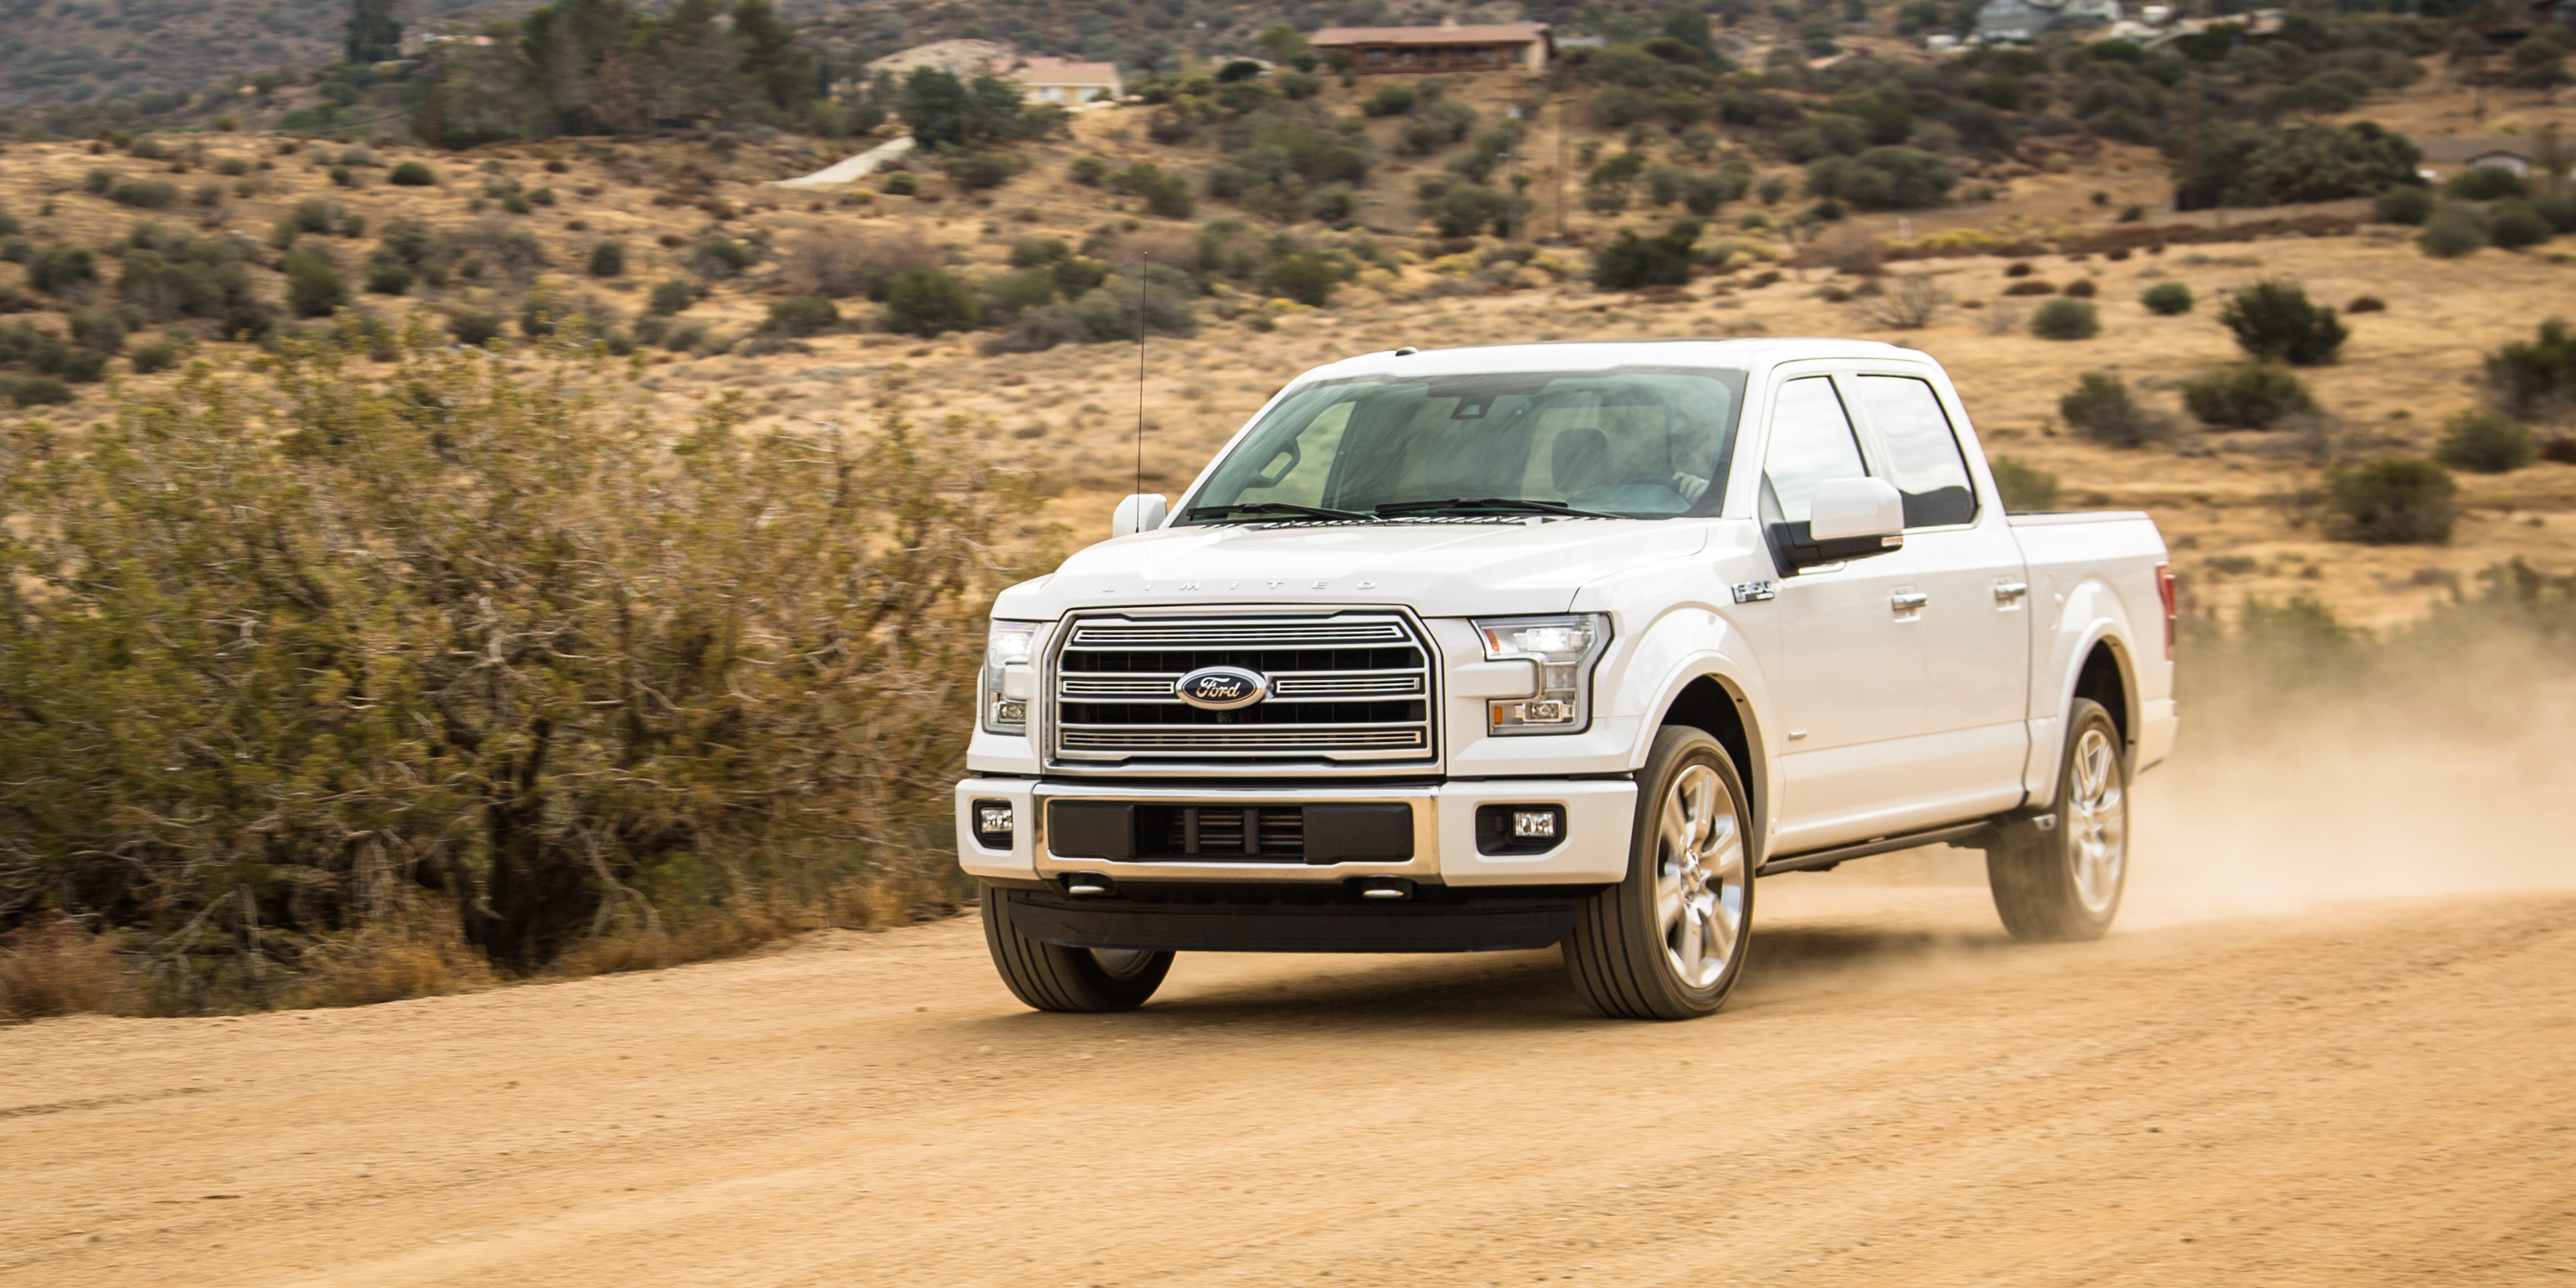 2017 ford f 150 limited review photos caradvice. Black Bedroom Furniture Sets. Home Design Ideas